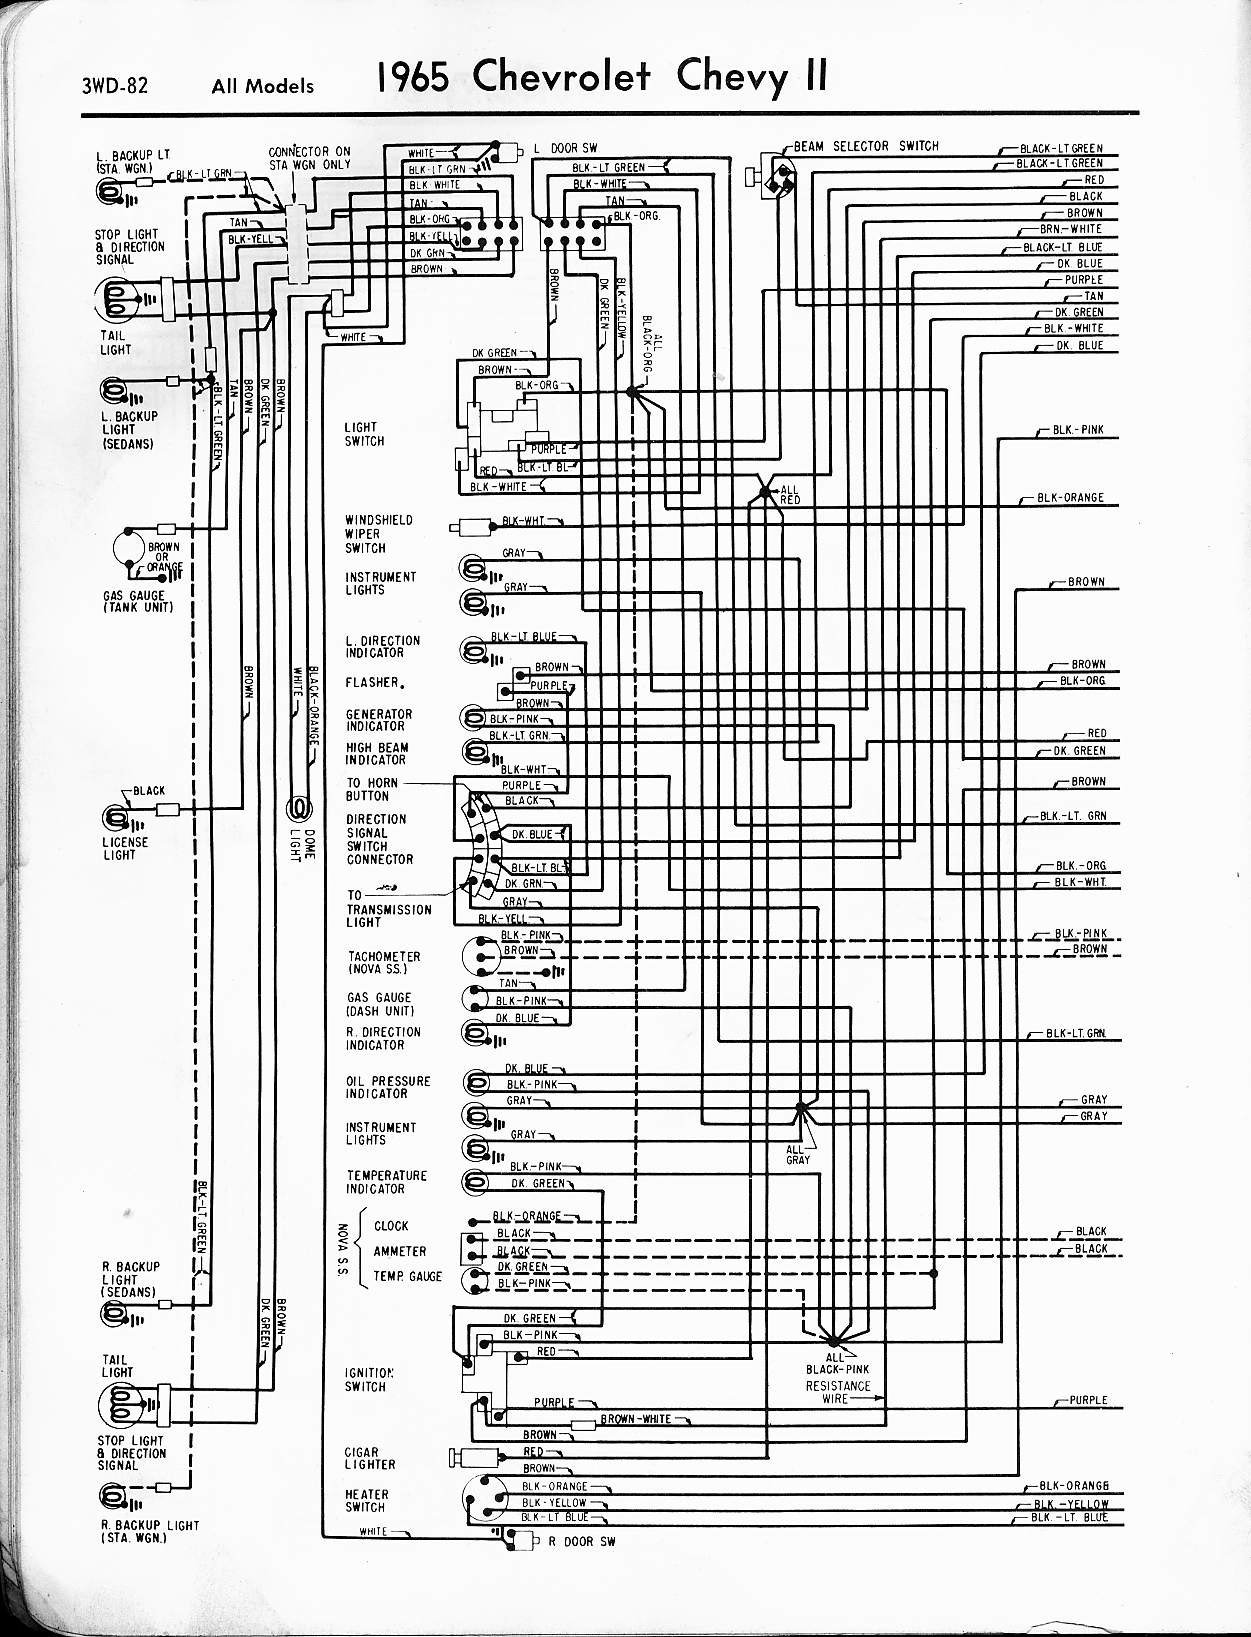 1965 Chevy Fuse Box Diagram Archive Of Automotive Wiring Lincoln Continental C10 Electrical Diagrams Schematics Rh Glenifferagility Co Uk